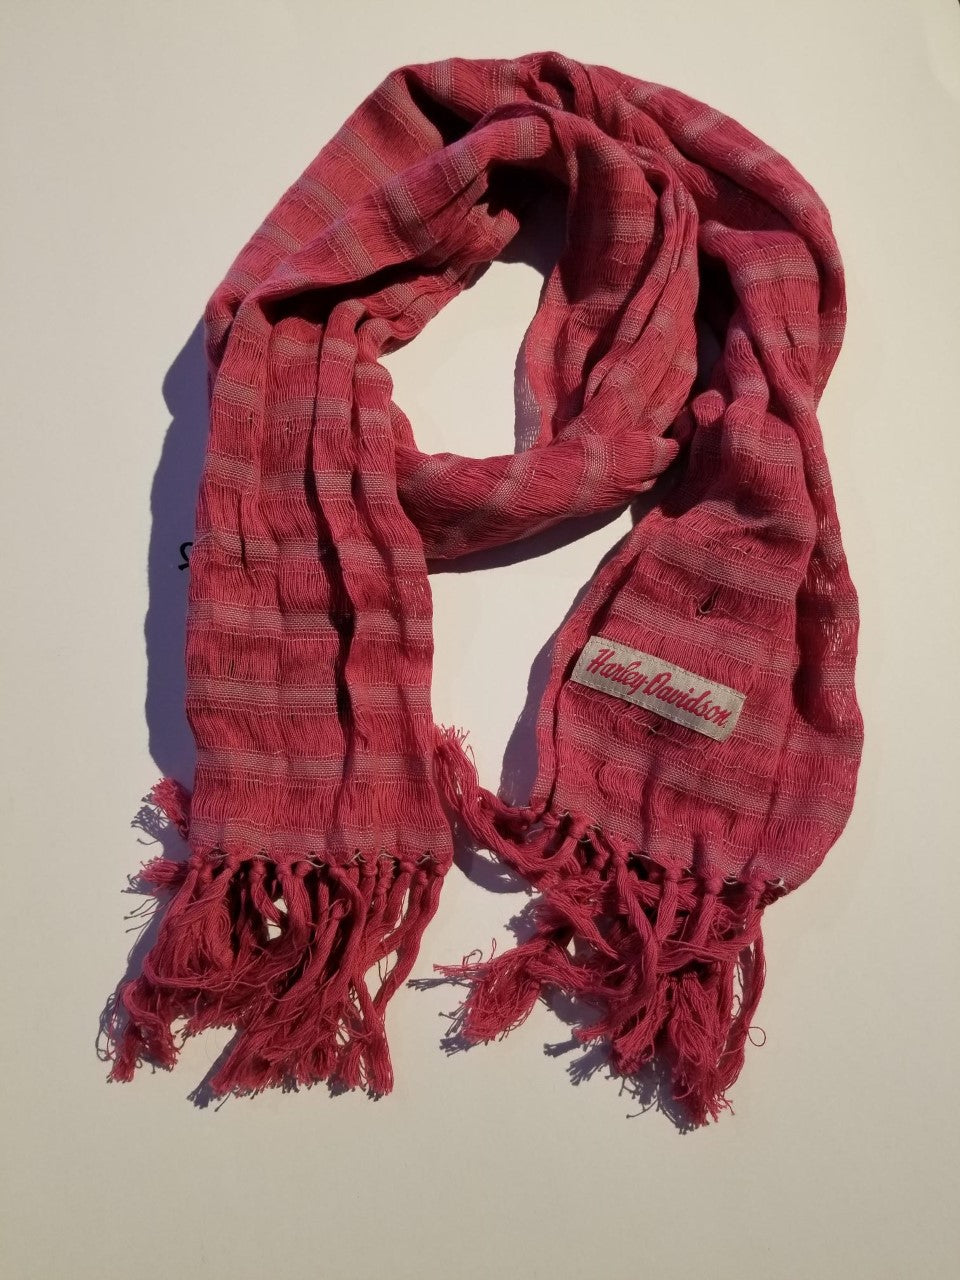 Harley-Davidson scarf-striped women's berry